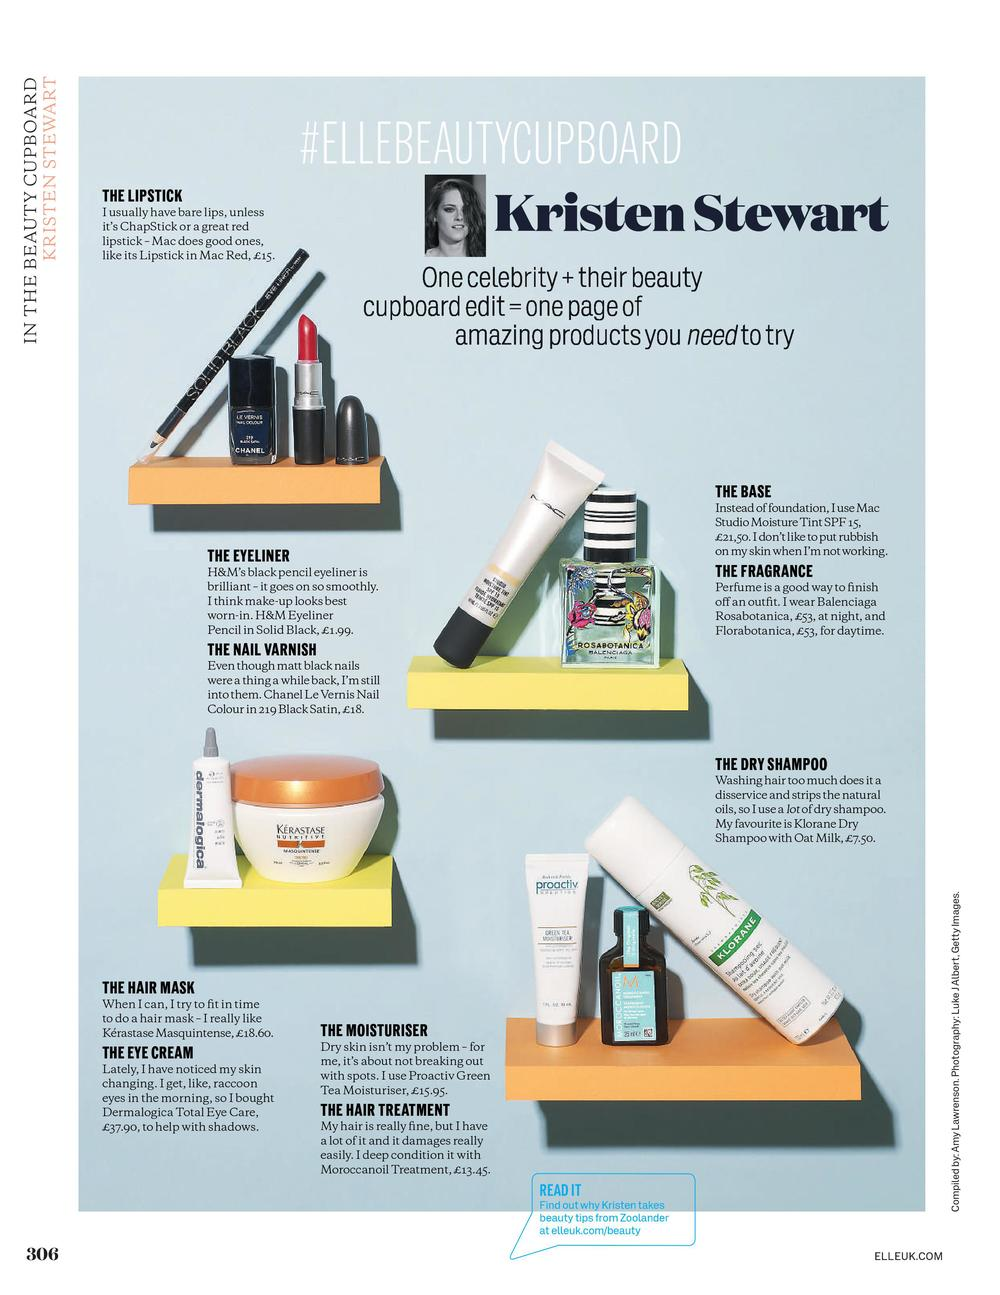 ELLE Beauty Cupboard: Kristen Stewart